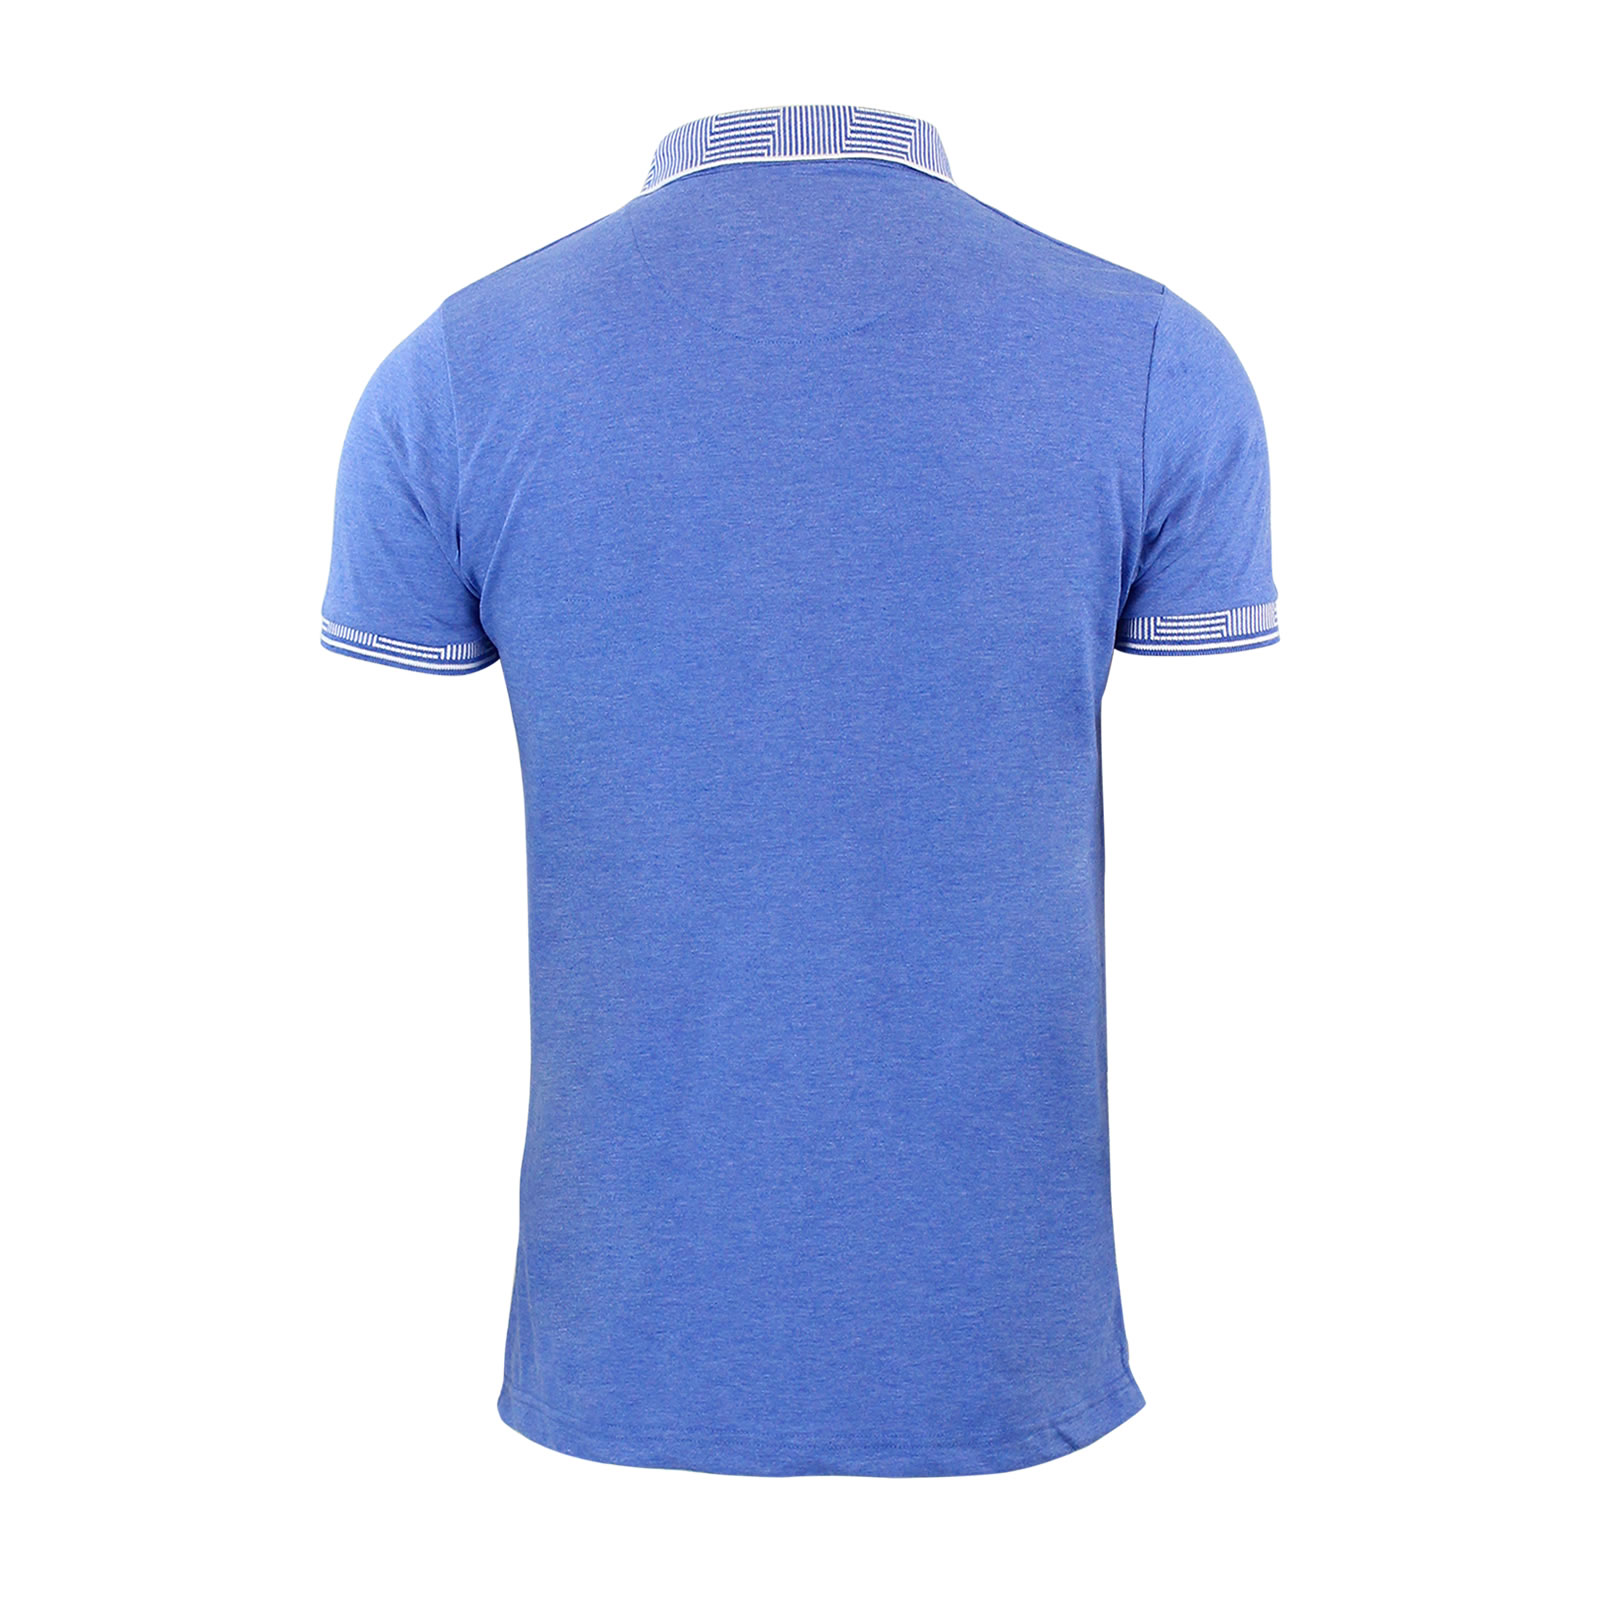 Mens-Polo-T-Shirt-Brave-Soul-Glover-Cotton-Collared-Short-Sleeve-Casual-Top thumbnail 6